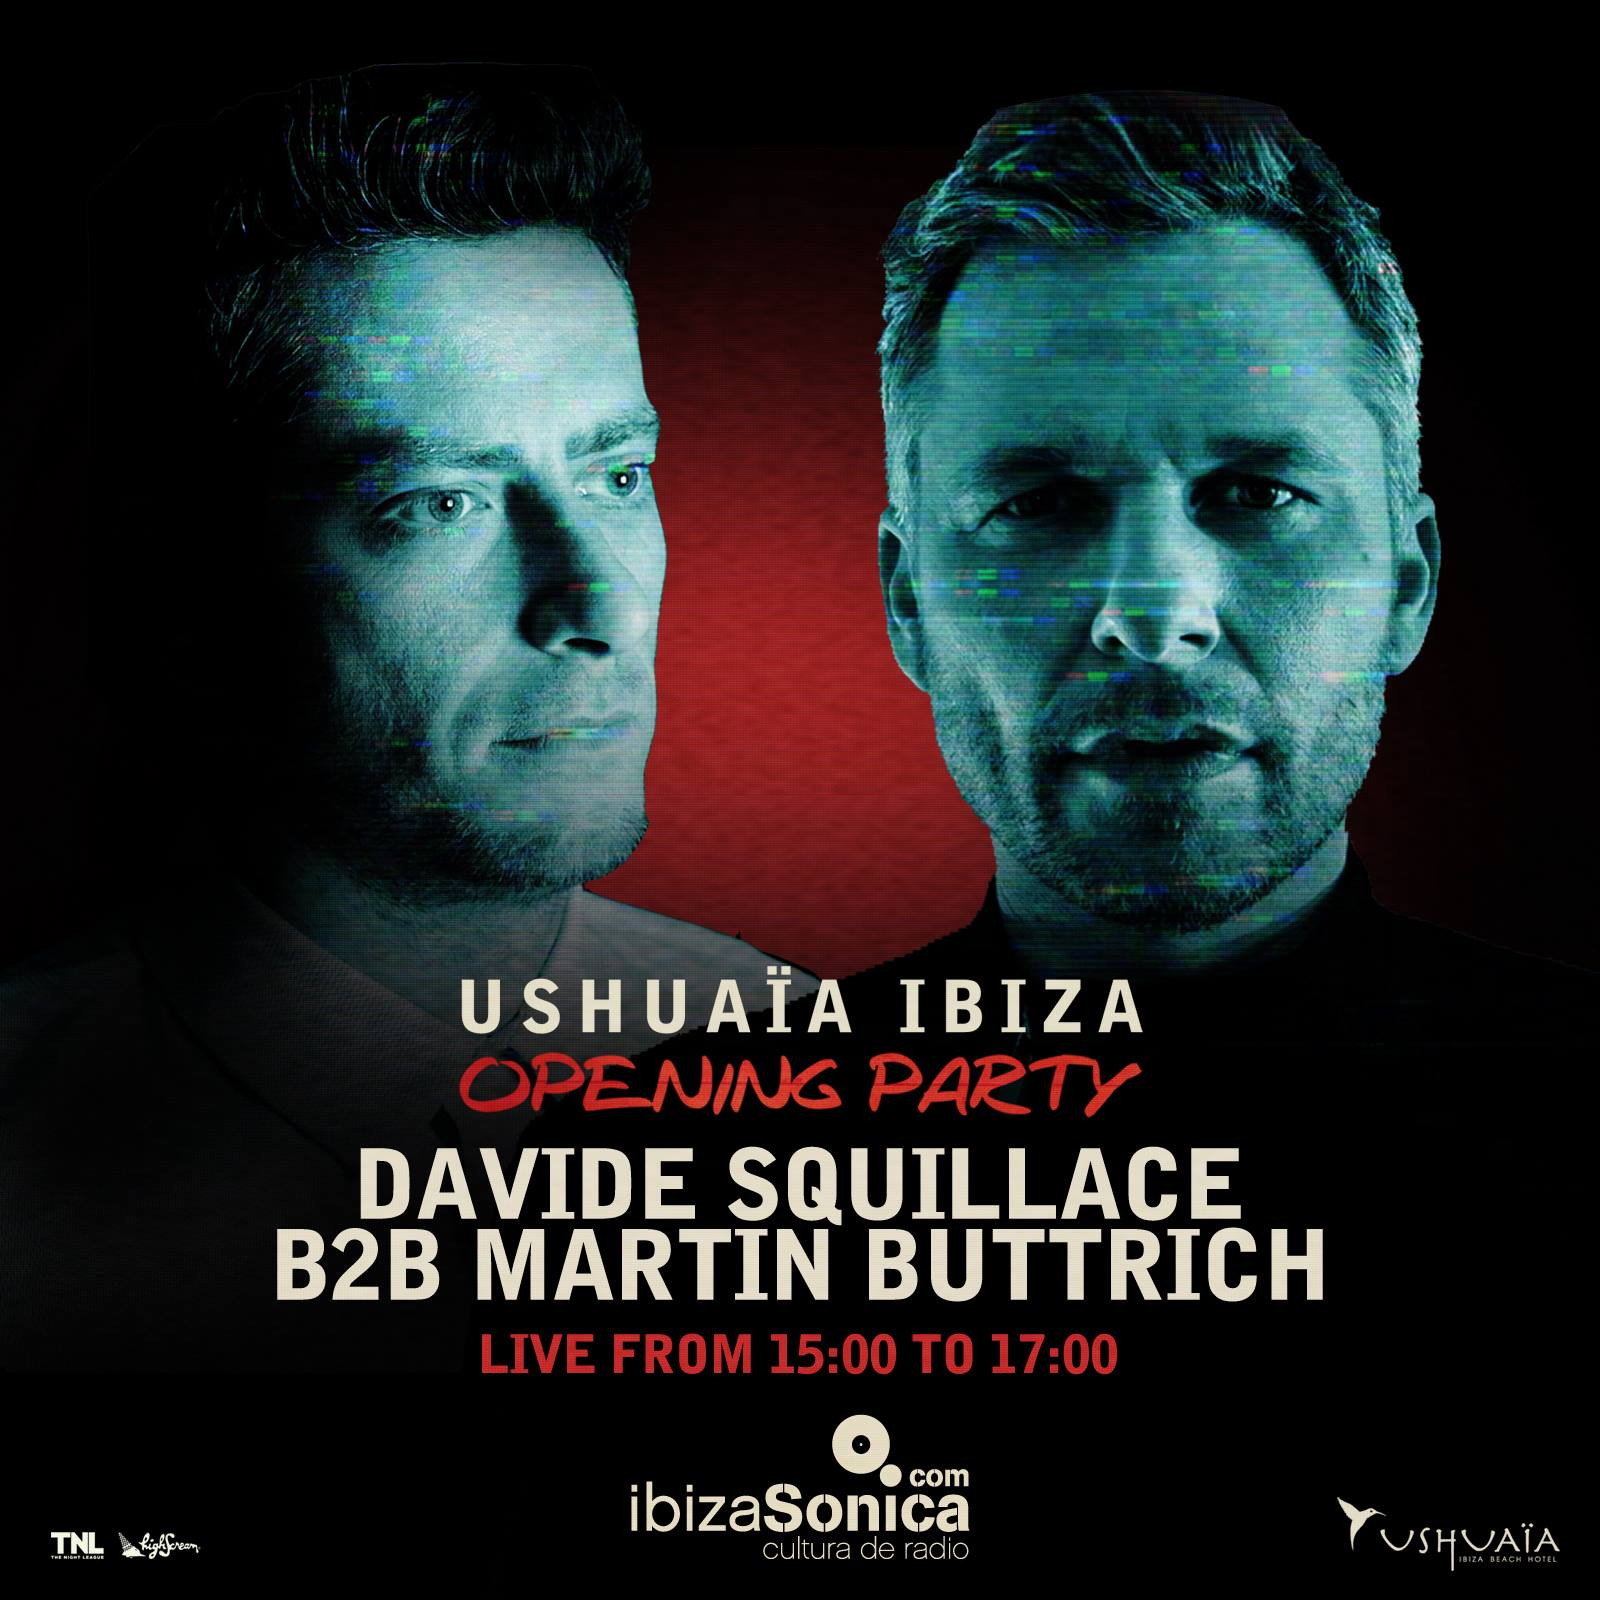 download → Davide Squillace B2B Martin Buttrich - live at Ushuaia 2017 Opening Party (Ibiza) - 27-May-2017